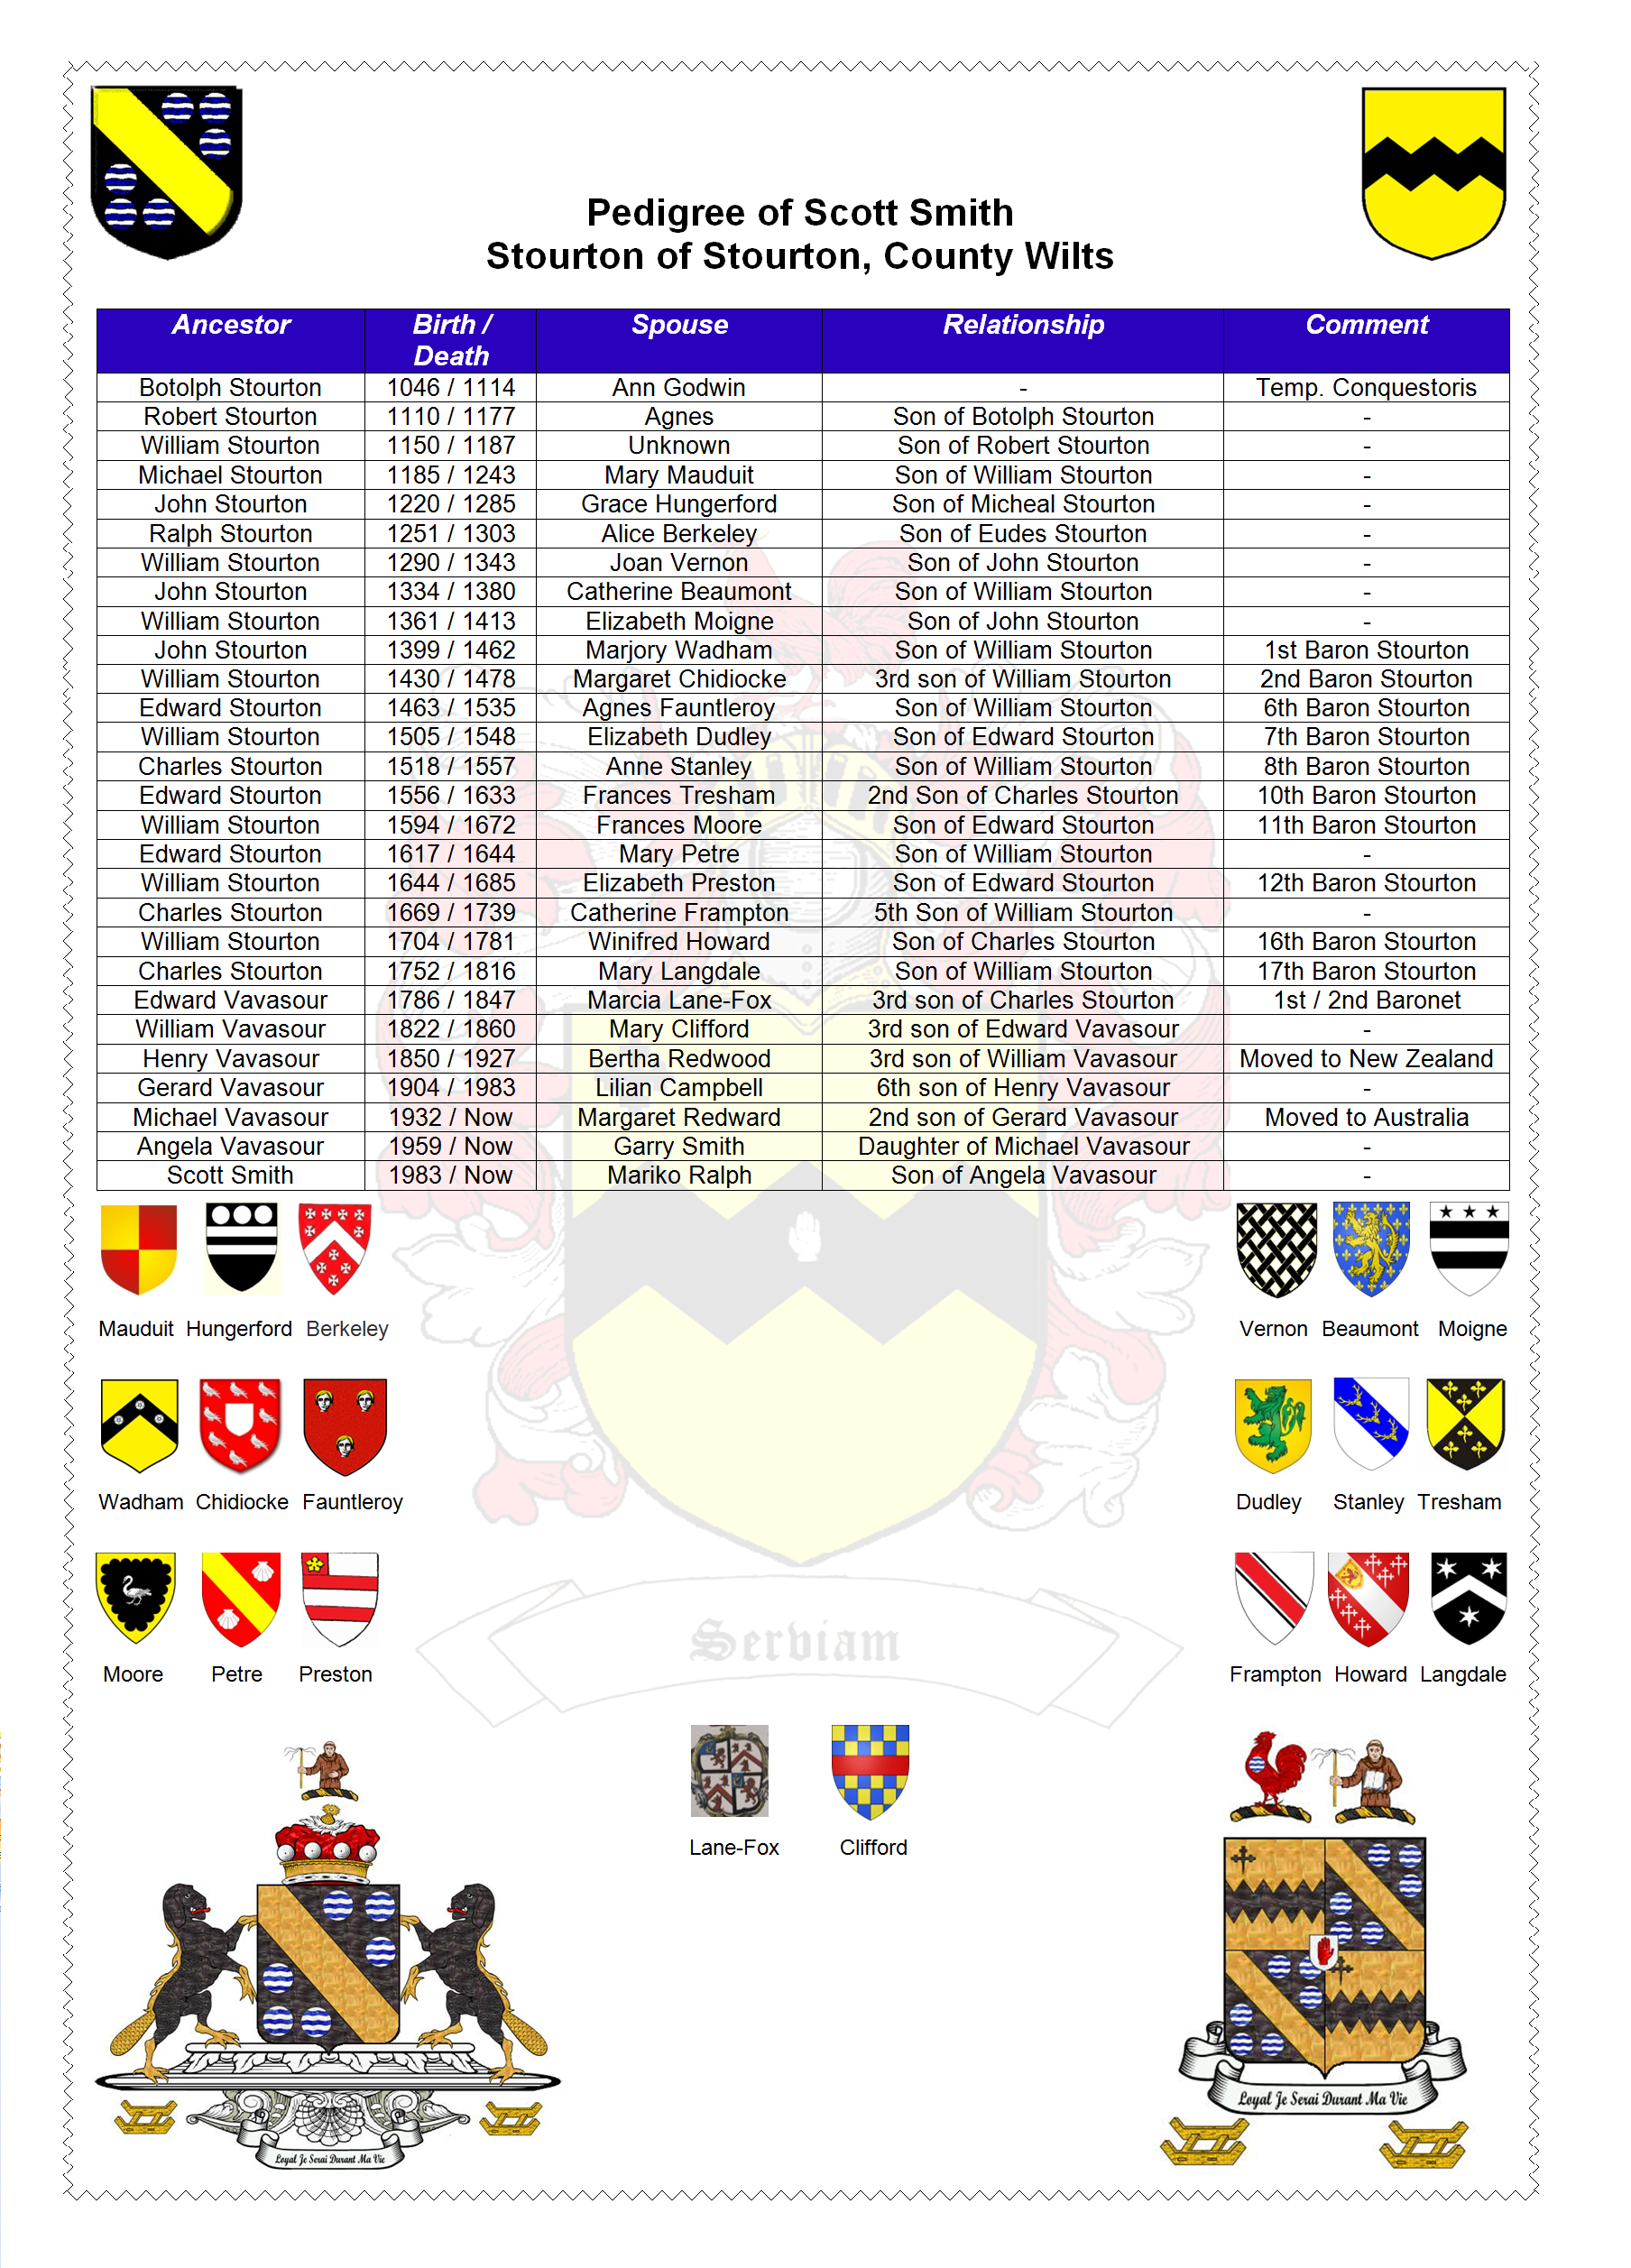 Pedigree Of Scott Smith As It Relates To The Stourtons Of